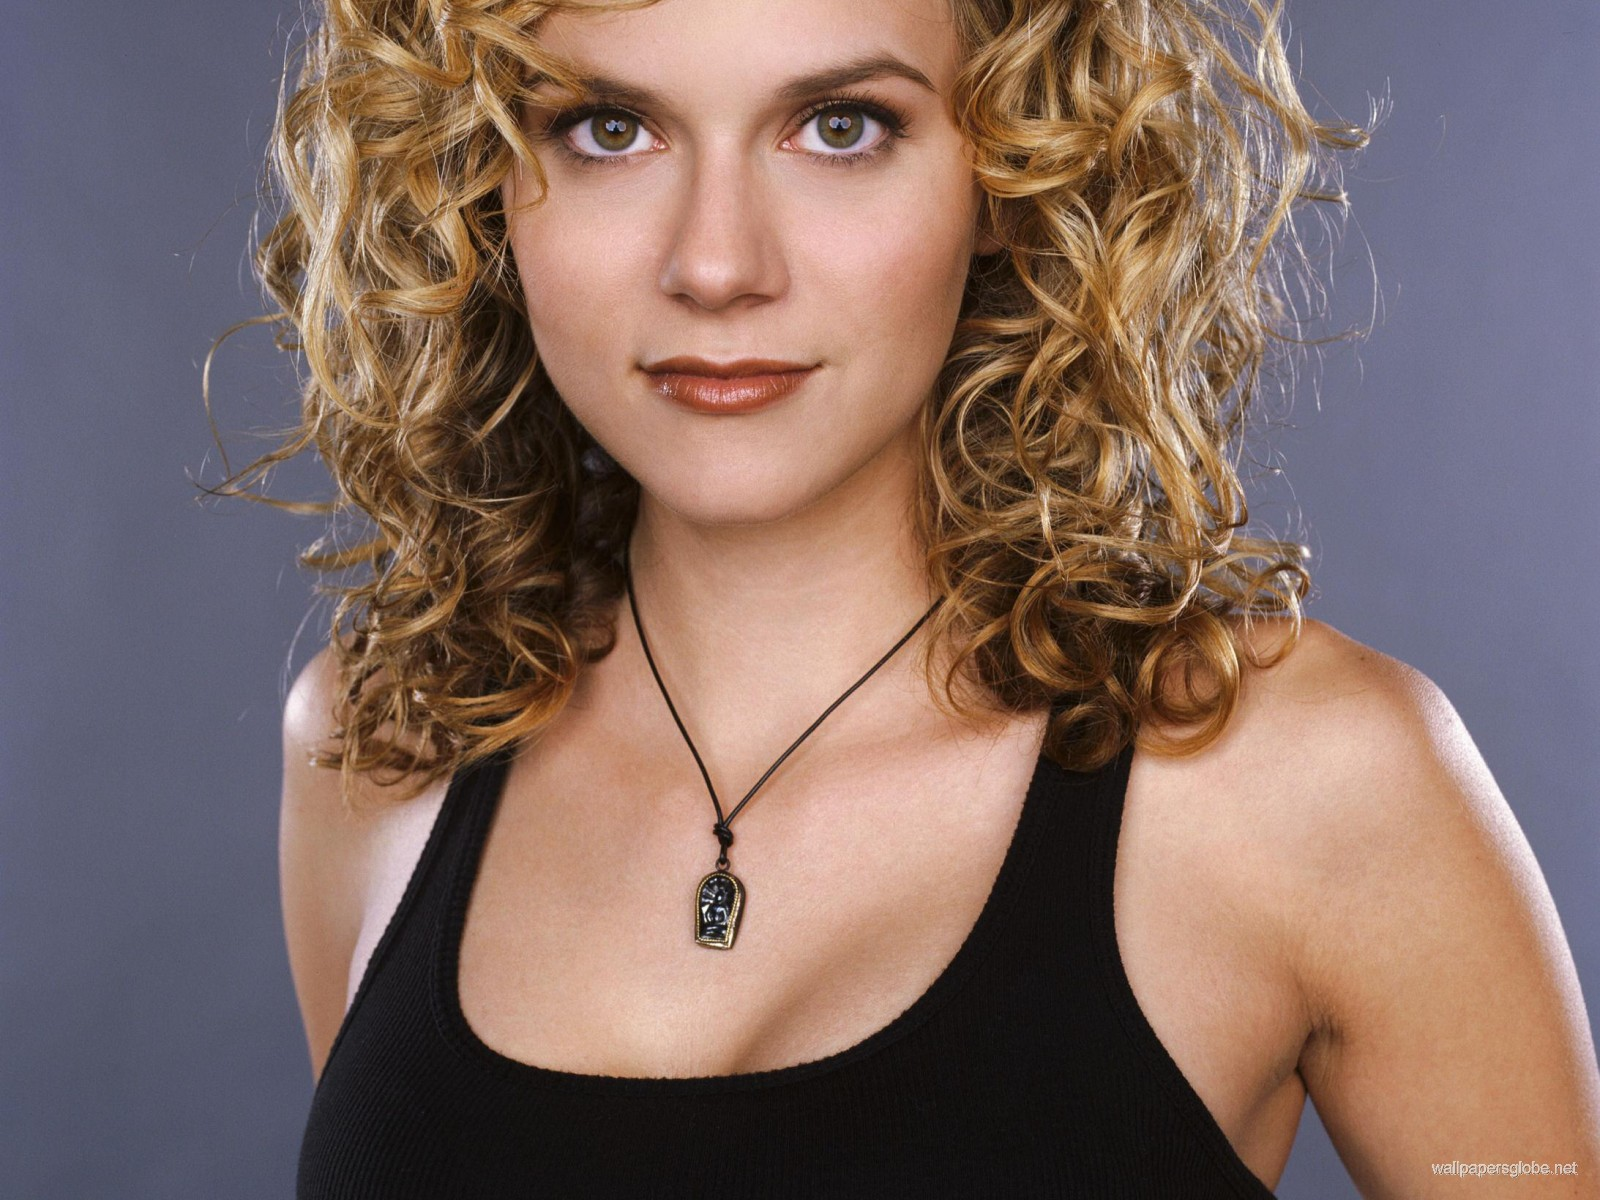 Metal Gear Solid Iphone Wallpaper Hilarie Burton Wallpapers Pictures Images